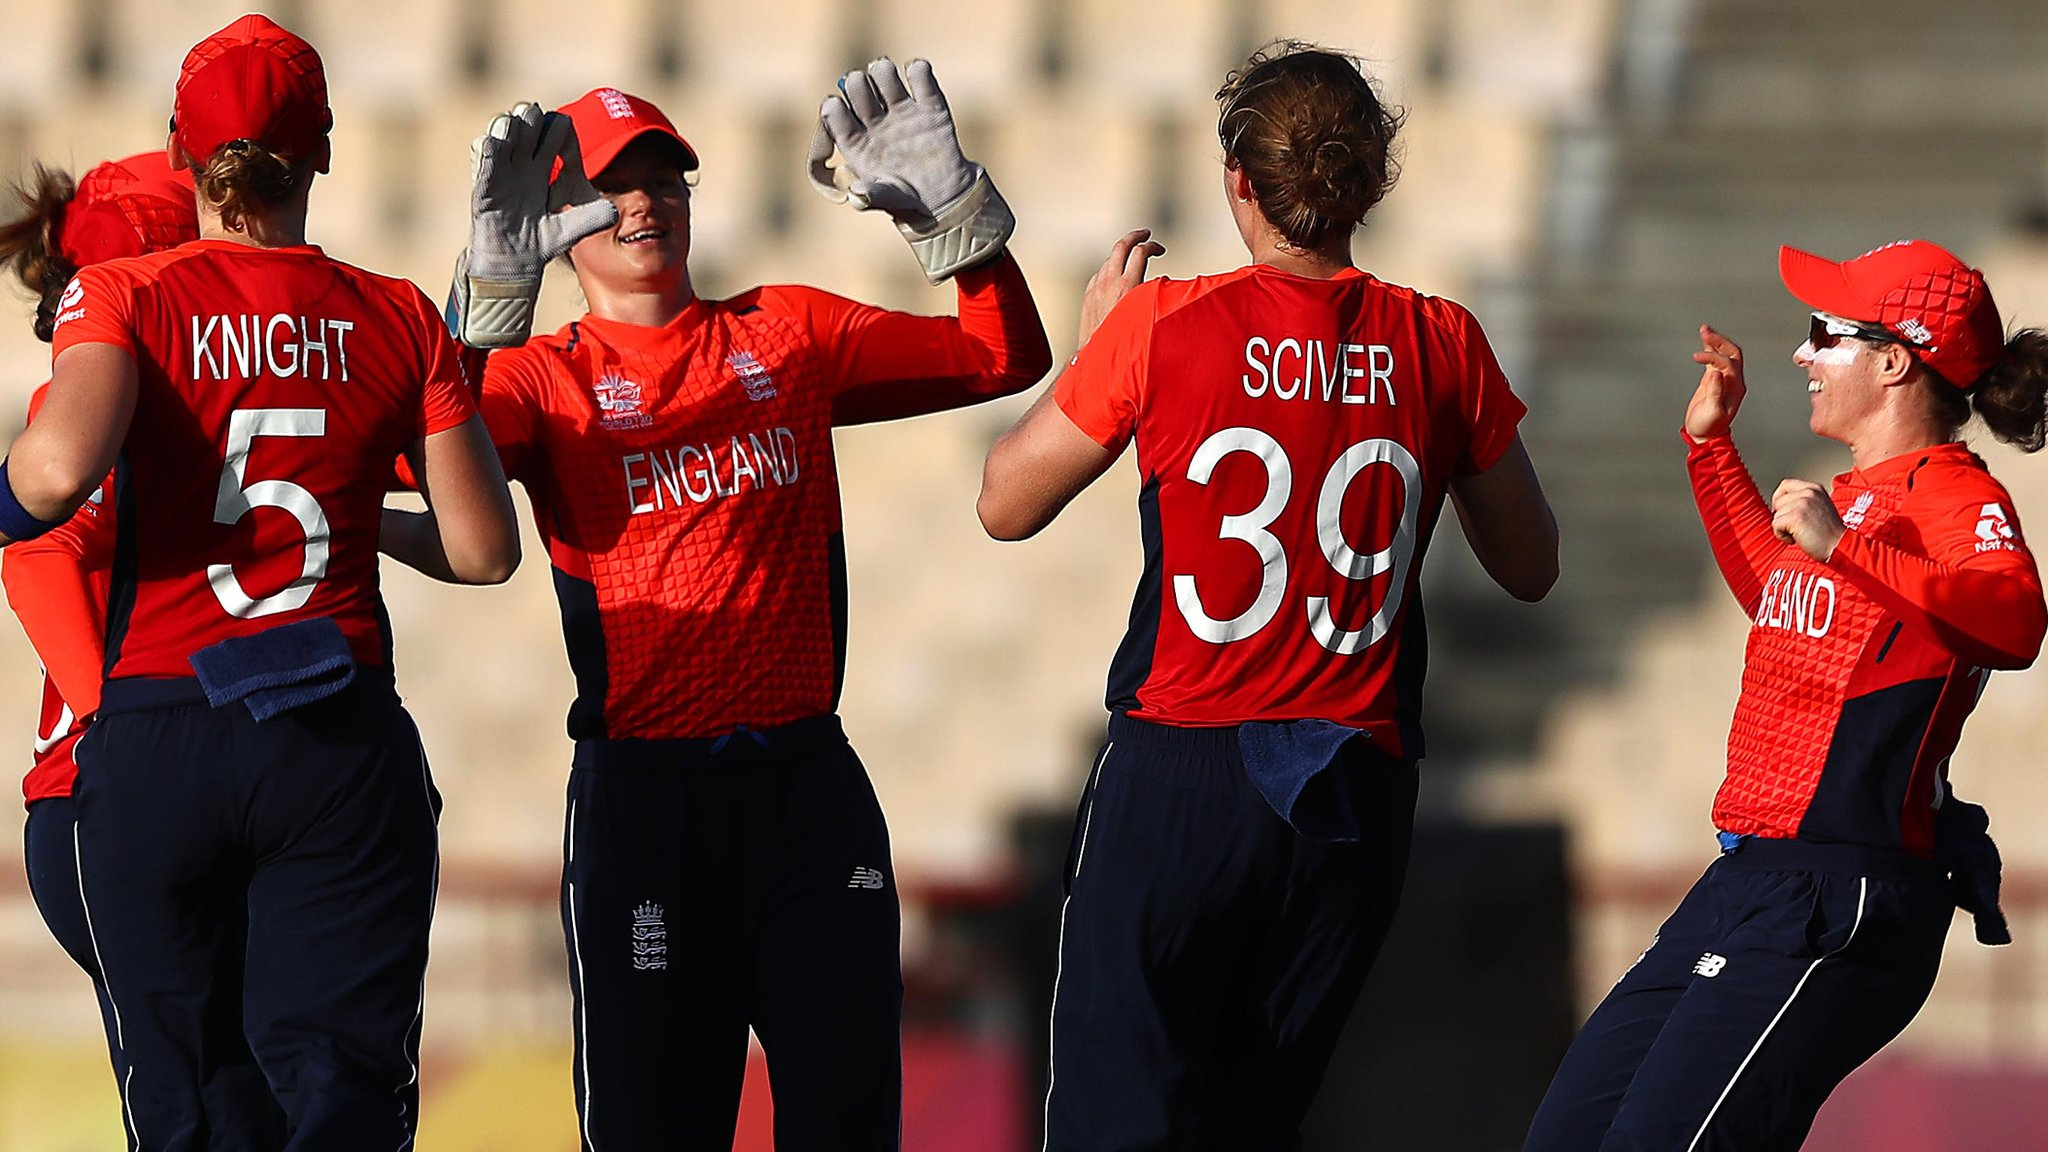 England beat Bangladesh after more rain at Women's World T20